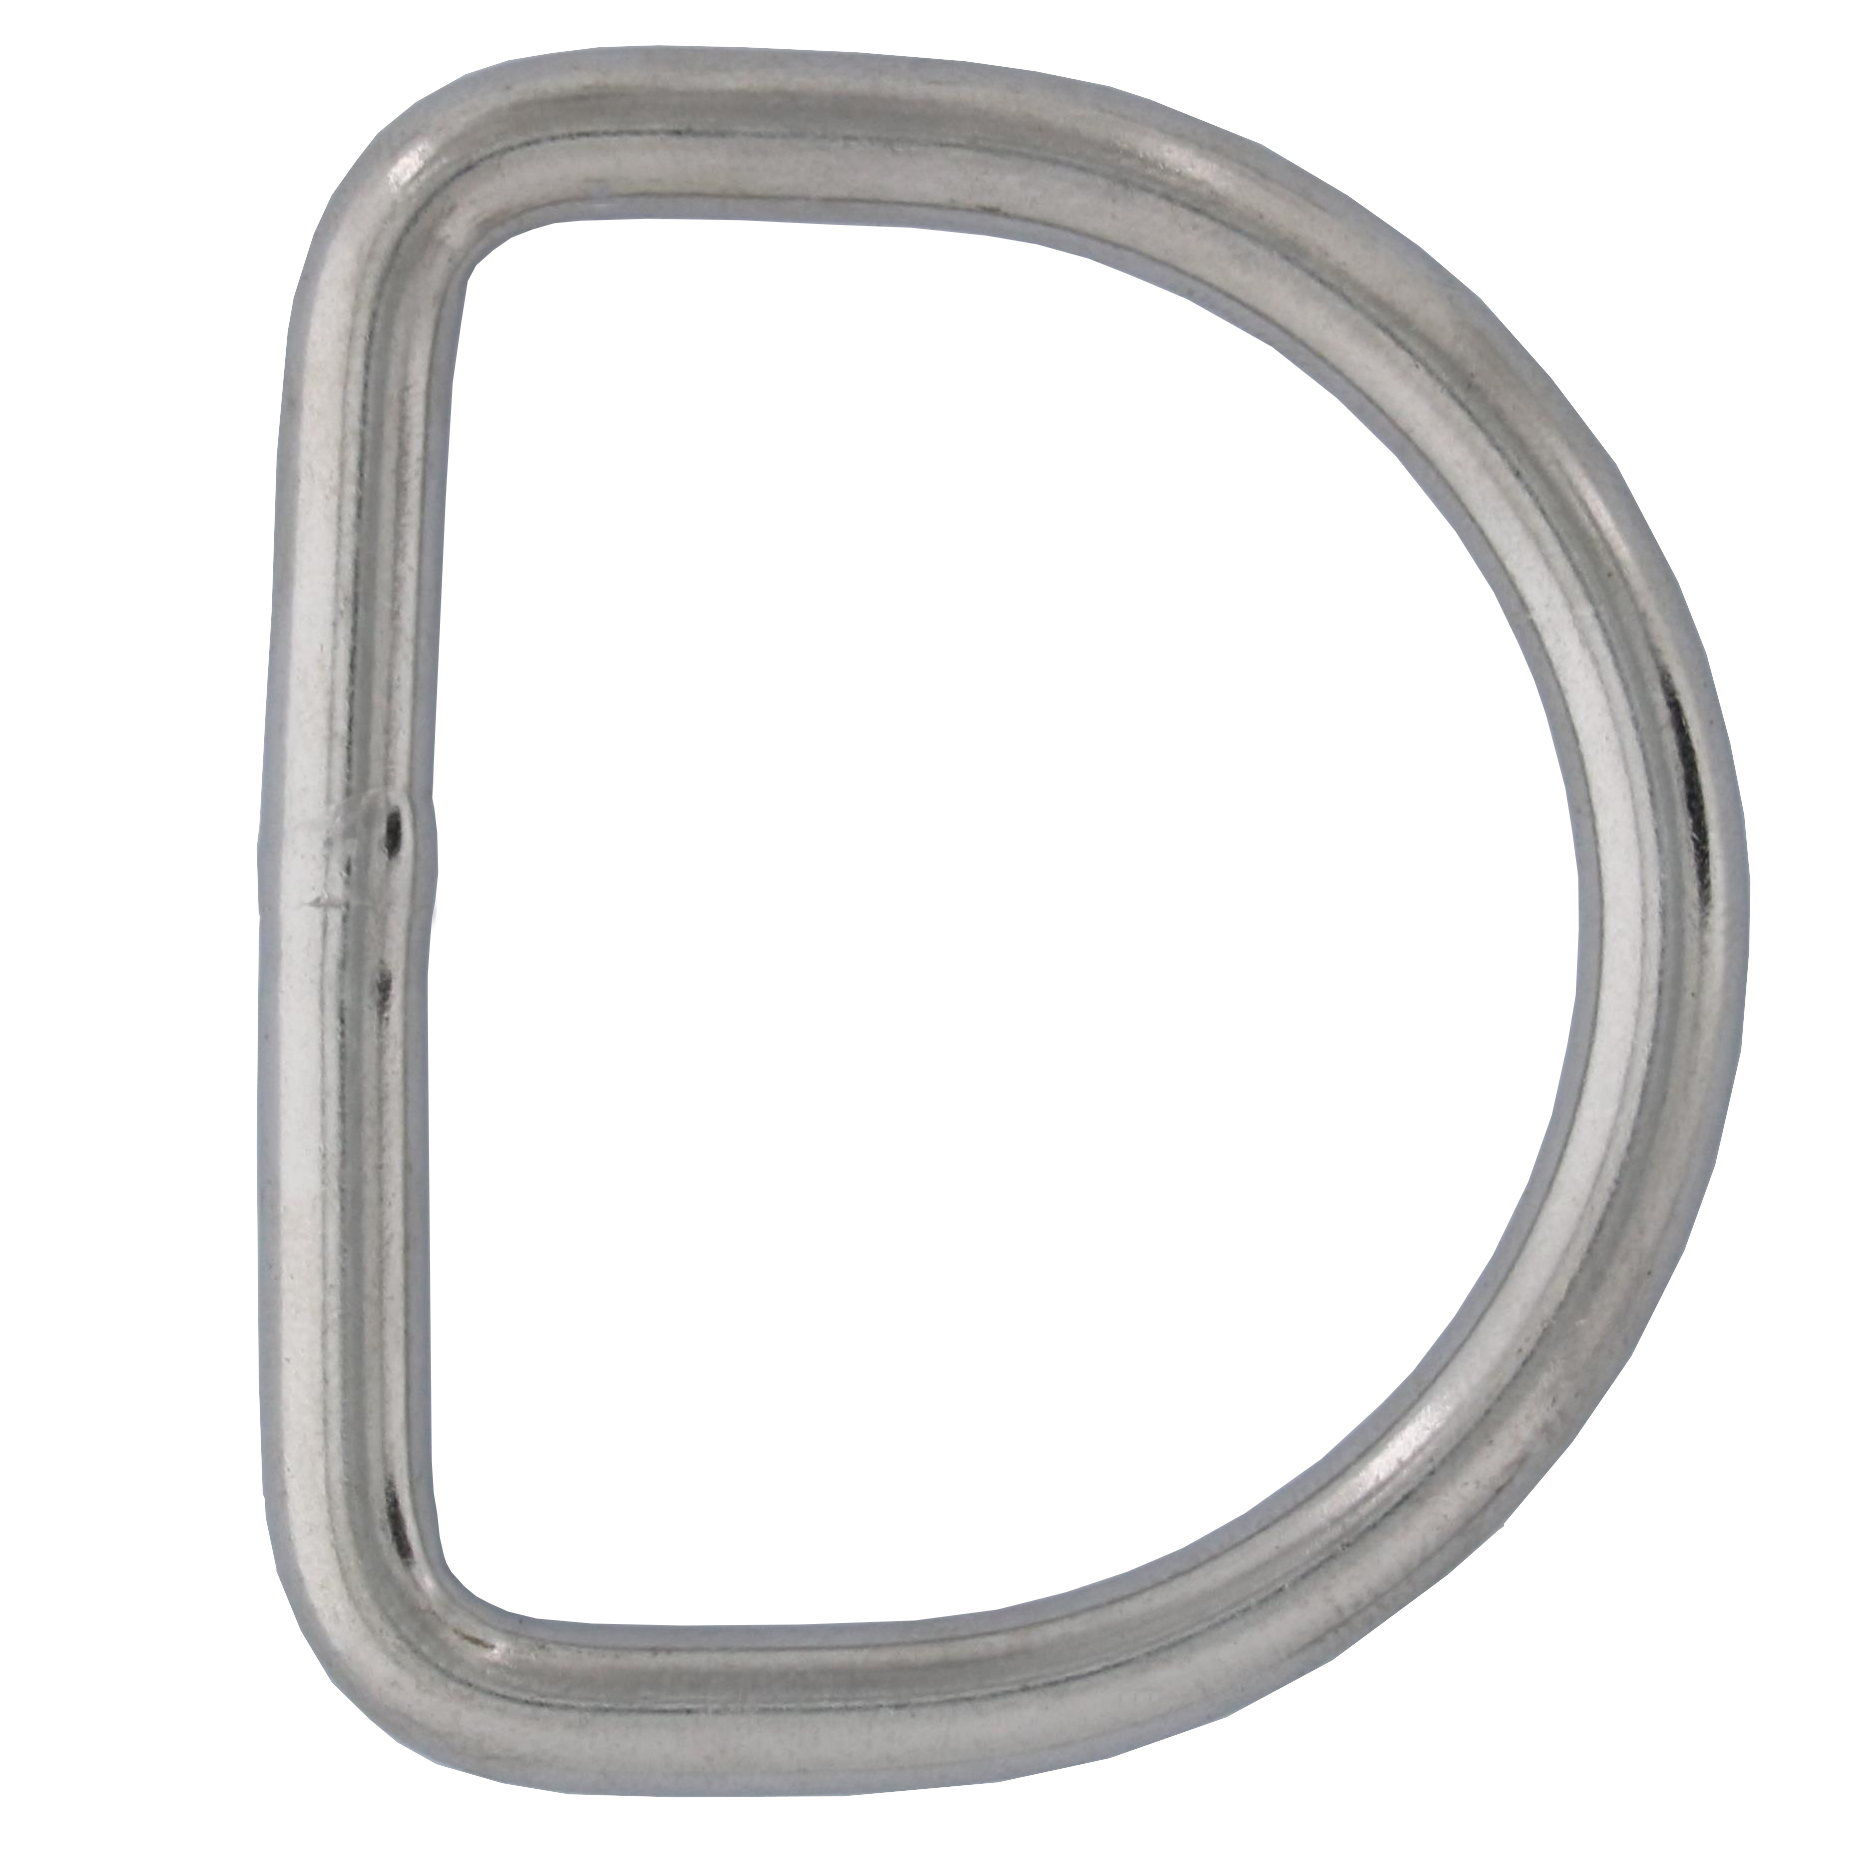 "3/16"" x 1-9/16"" Stainless Steel D Ring Image 1"